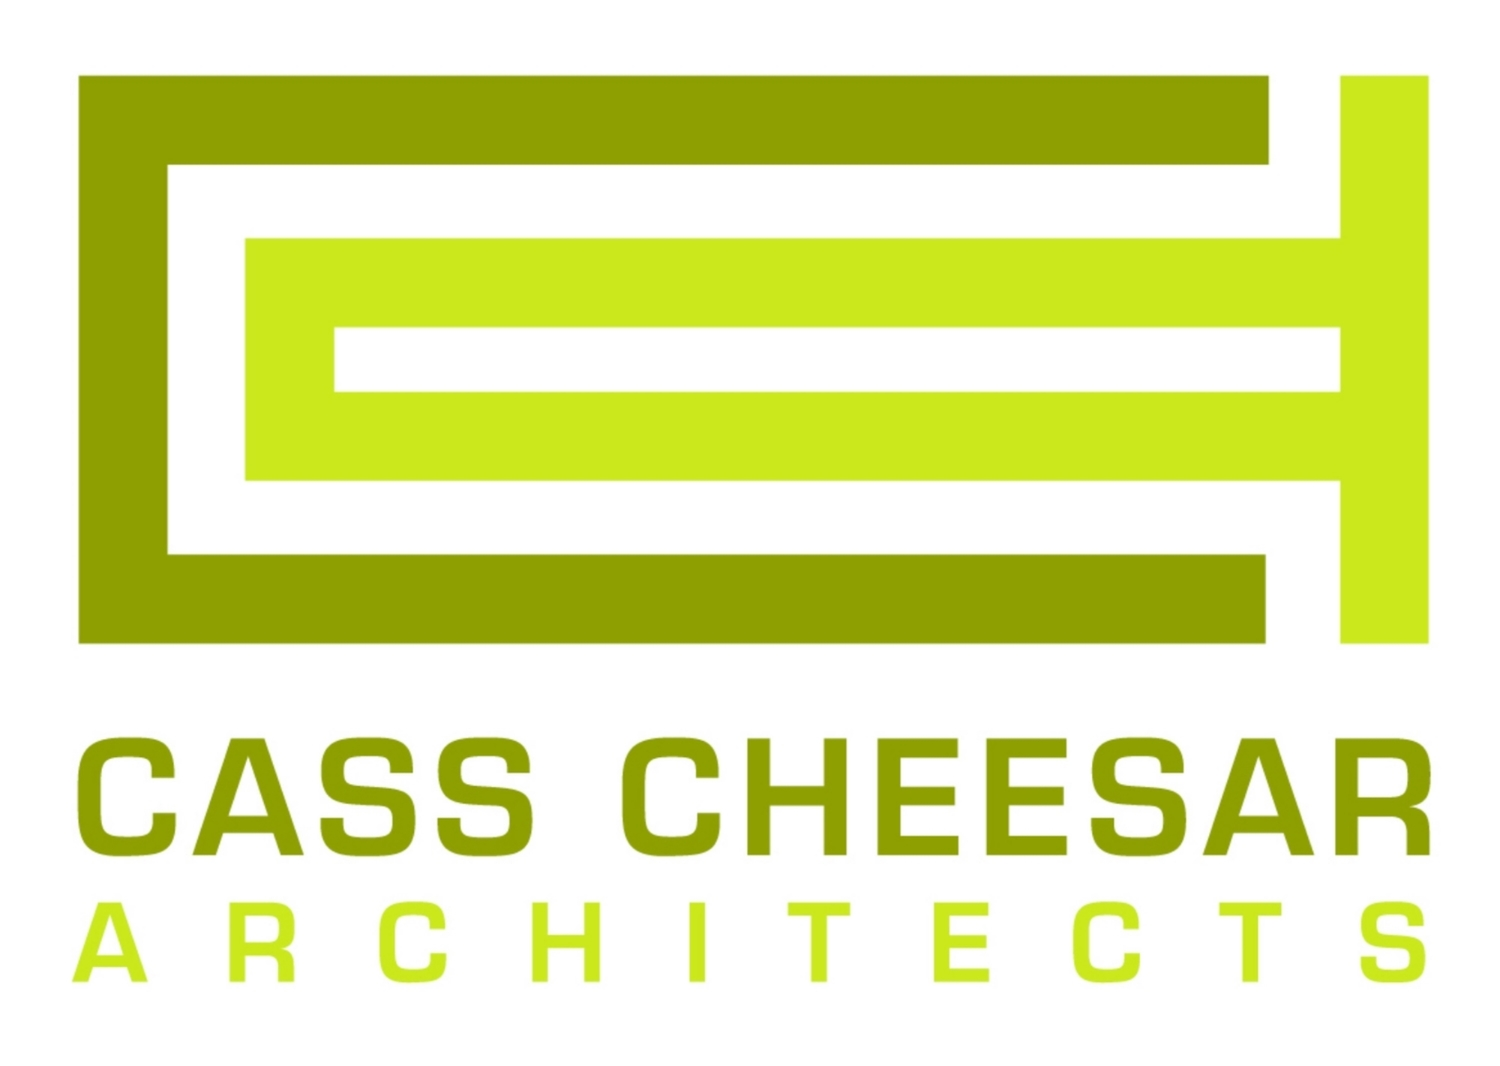 Cass Cheesar Architects